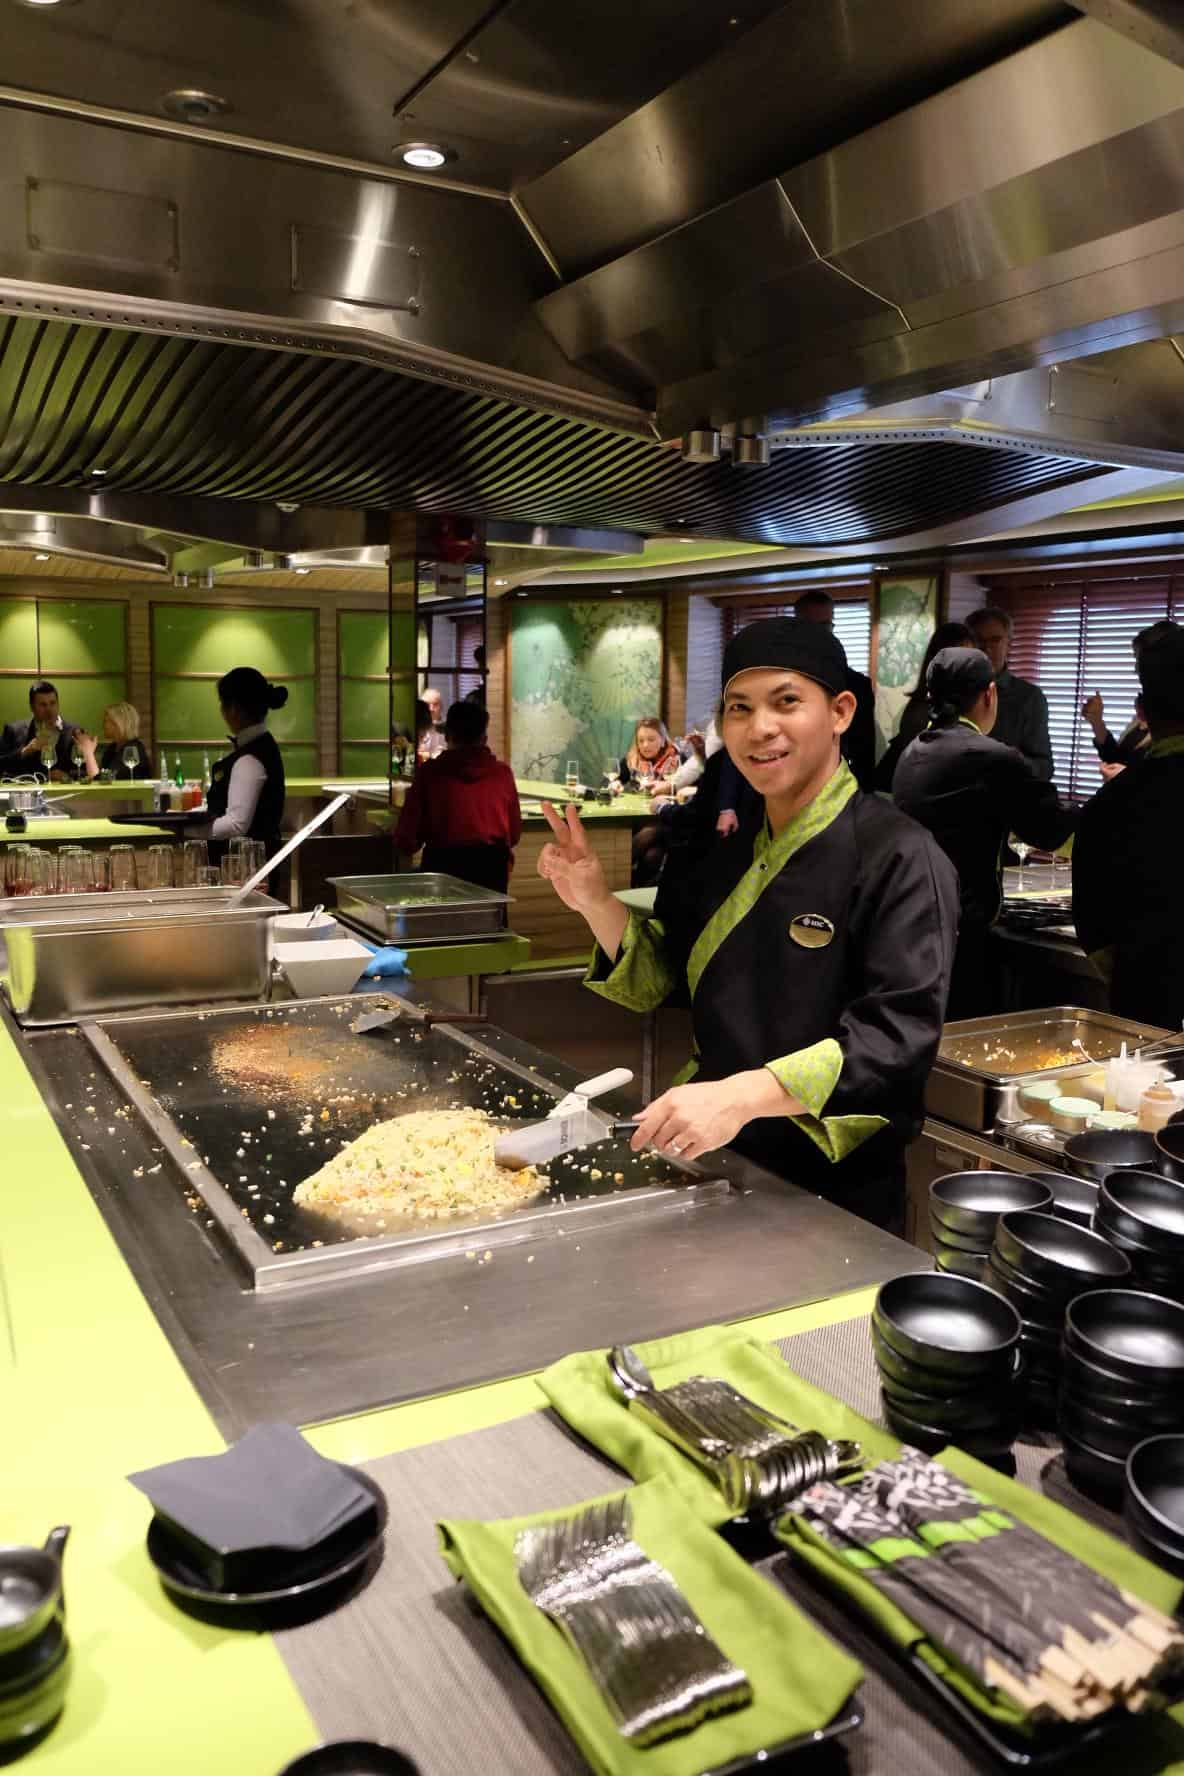 Kaito teppanyaki and sushi bar would be great fun for families! You can watch you dinner cooked right in front of your eyes. Or pop next door for some mouthwatering fresh sushi whilst people watching along the promenade.